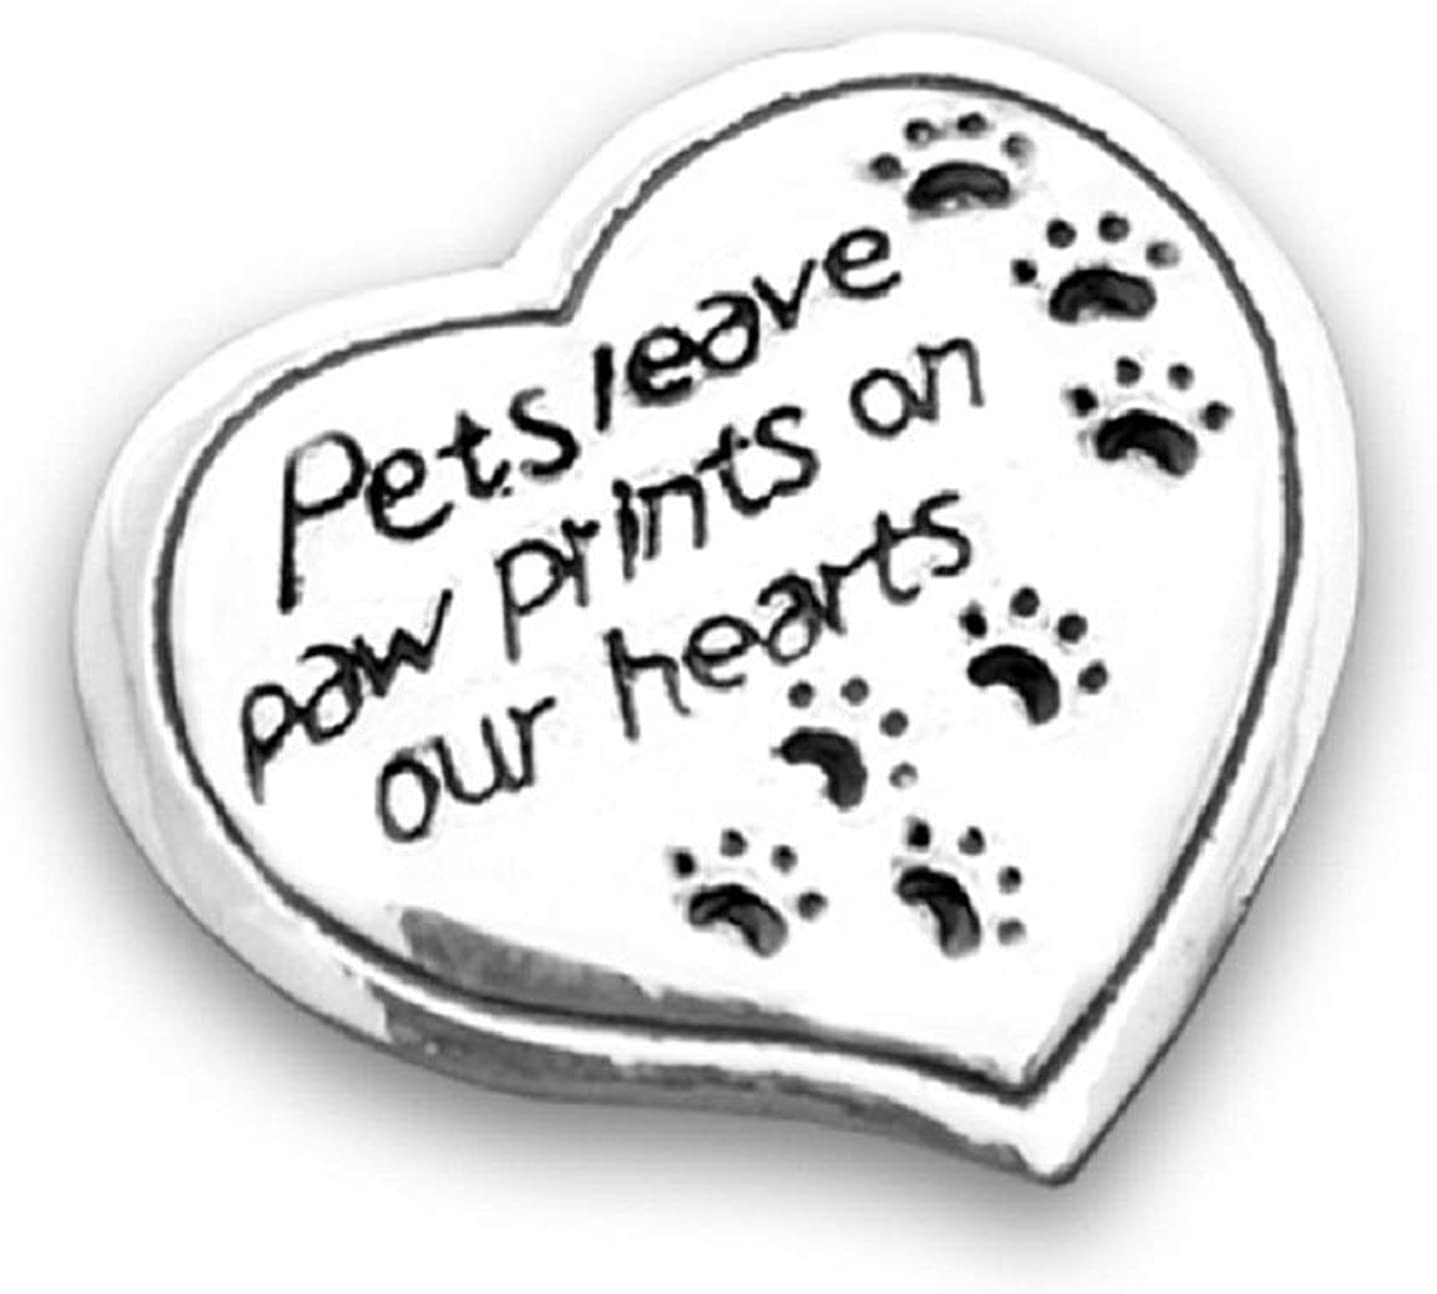 San Francisco Mall Pets Leave Paw Prints On Our 12 Bag Hearts a in Inventory cleanup selling sale Pins